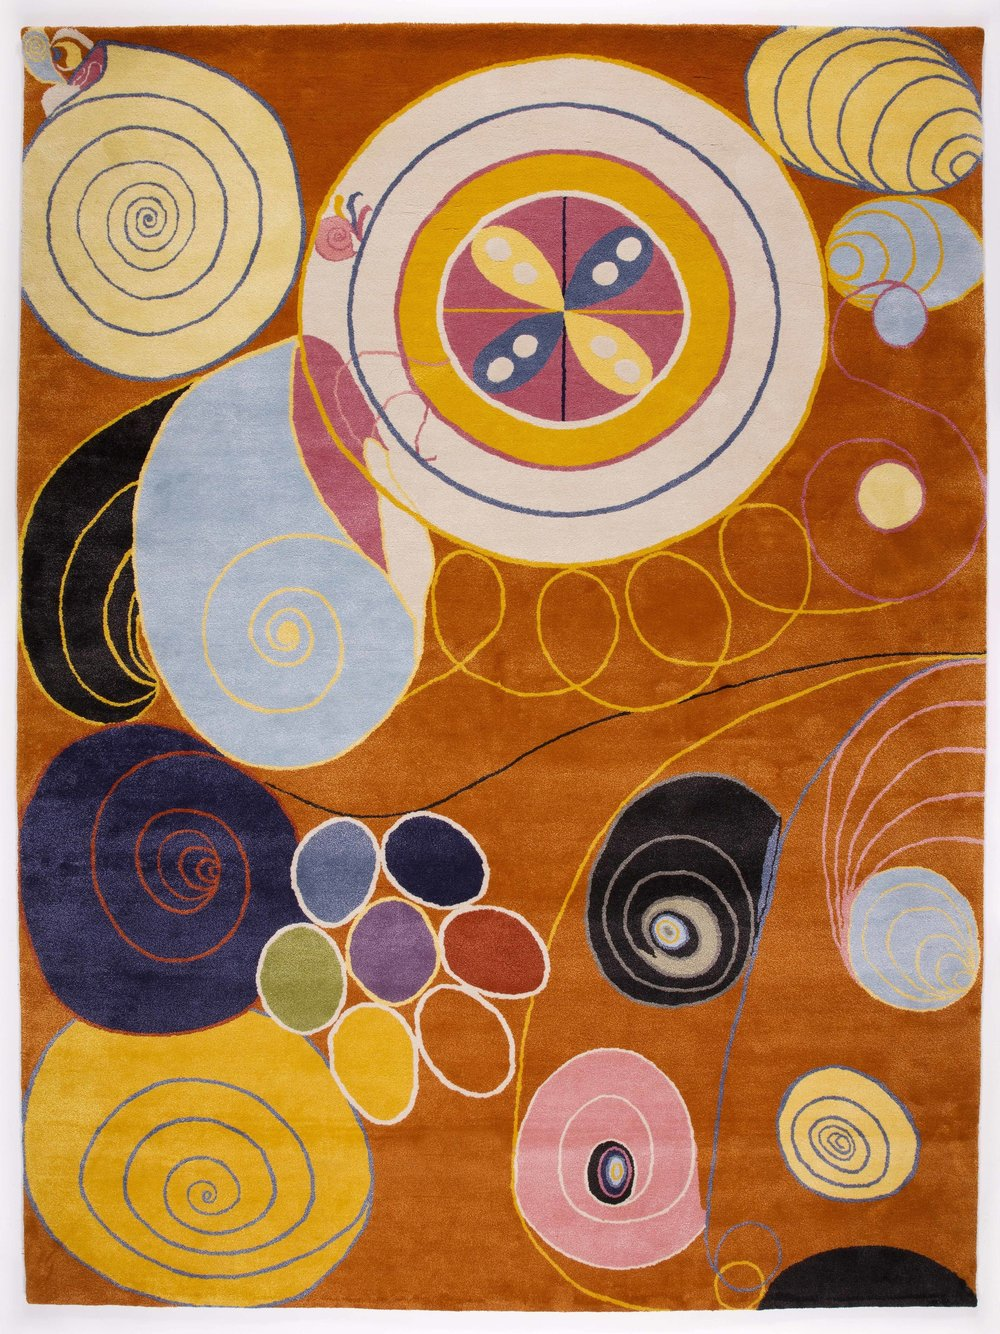 Hilma af Klint   Group IV, no 3. The Ten Largest, Youth  321 x 240 cm Edition 10 75% New Zealand wool, 25% silk Handknotted